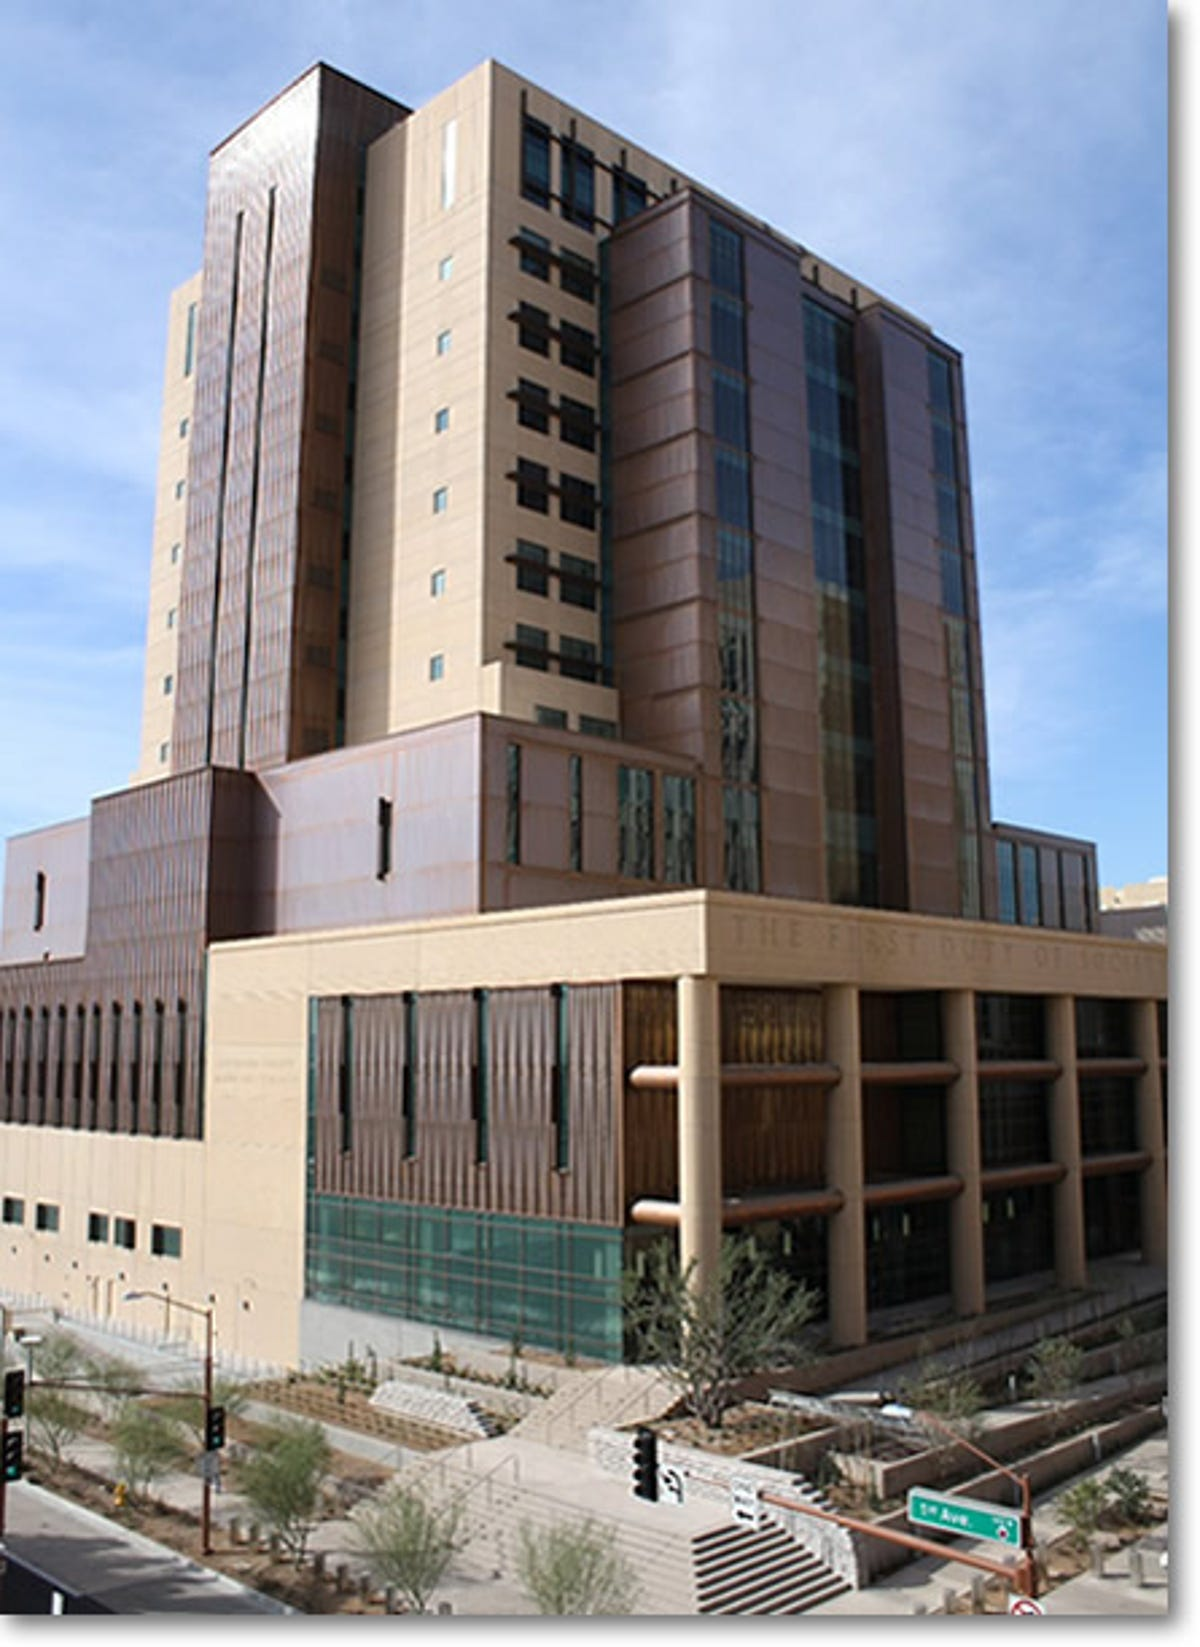 Arizona state courts set high price tag to view records online